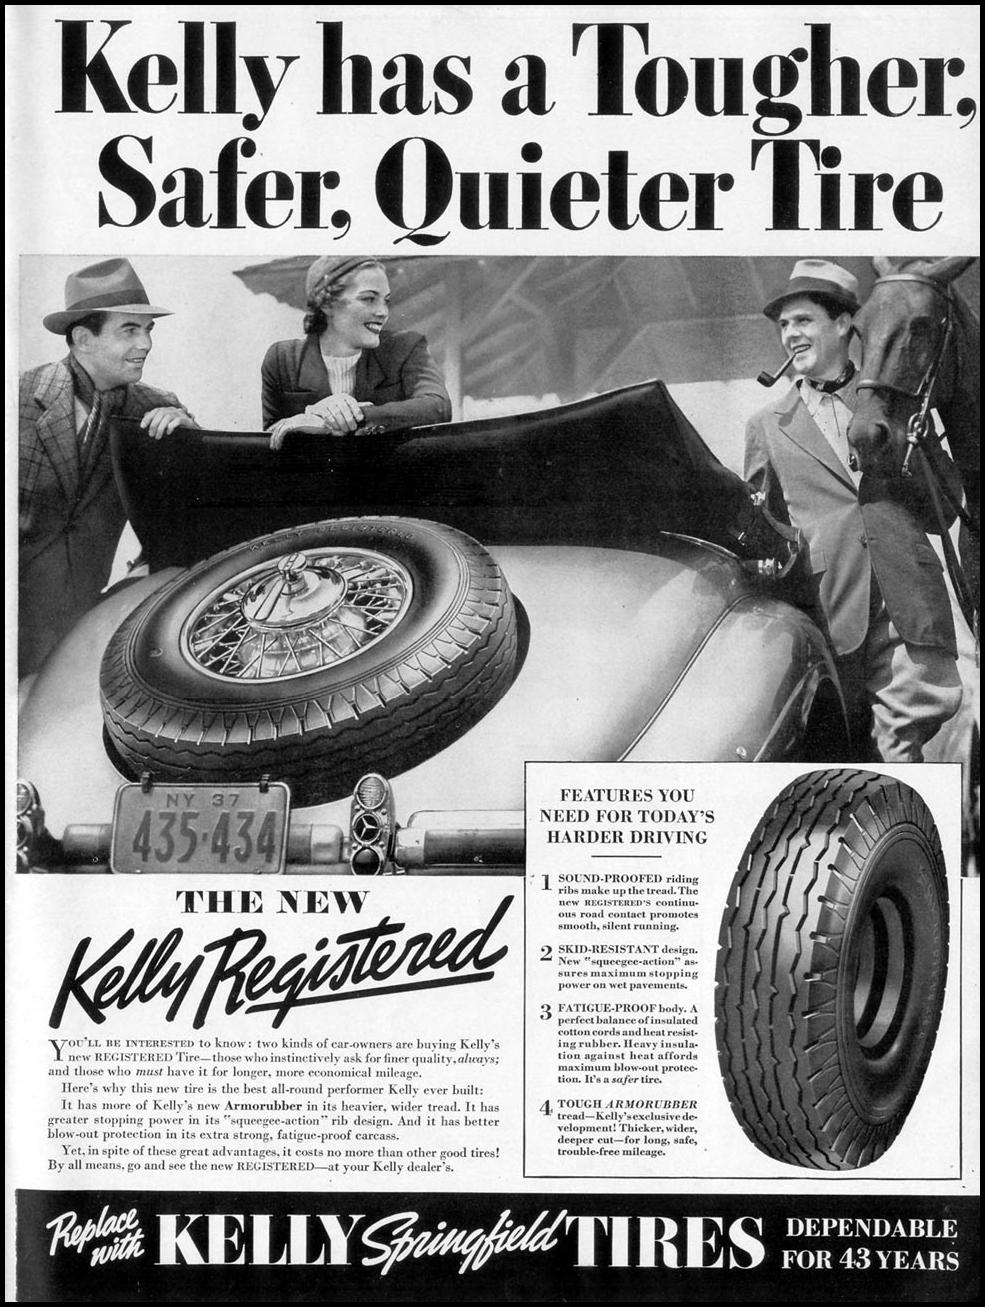 KELLY-SPRINGFIELD TIRES LIFE 09/20/1937 p. 111